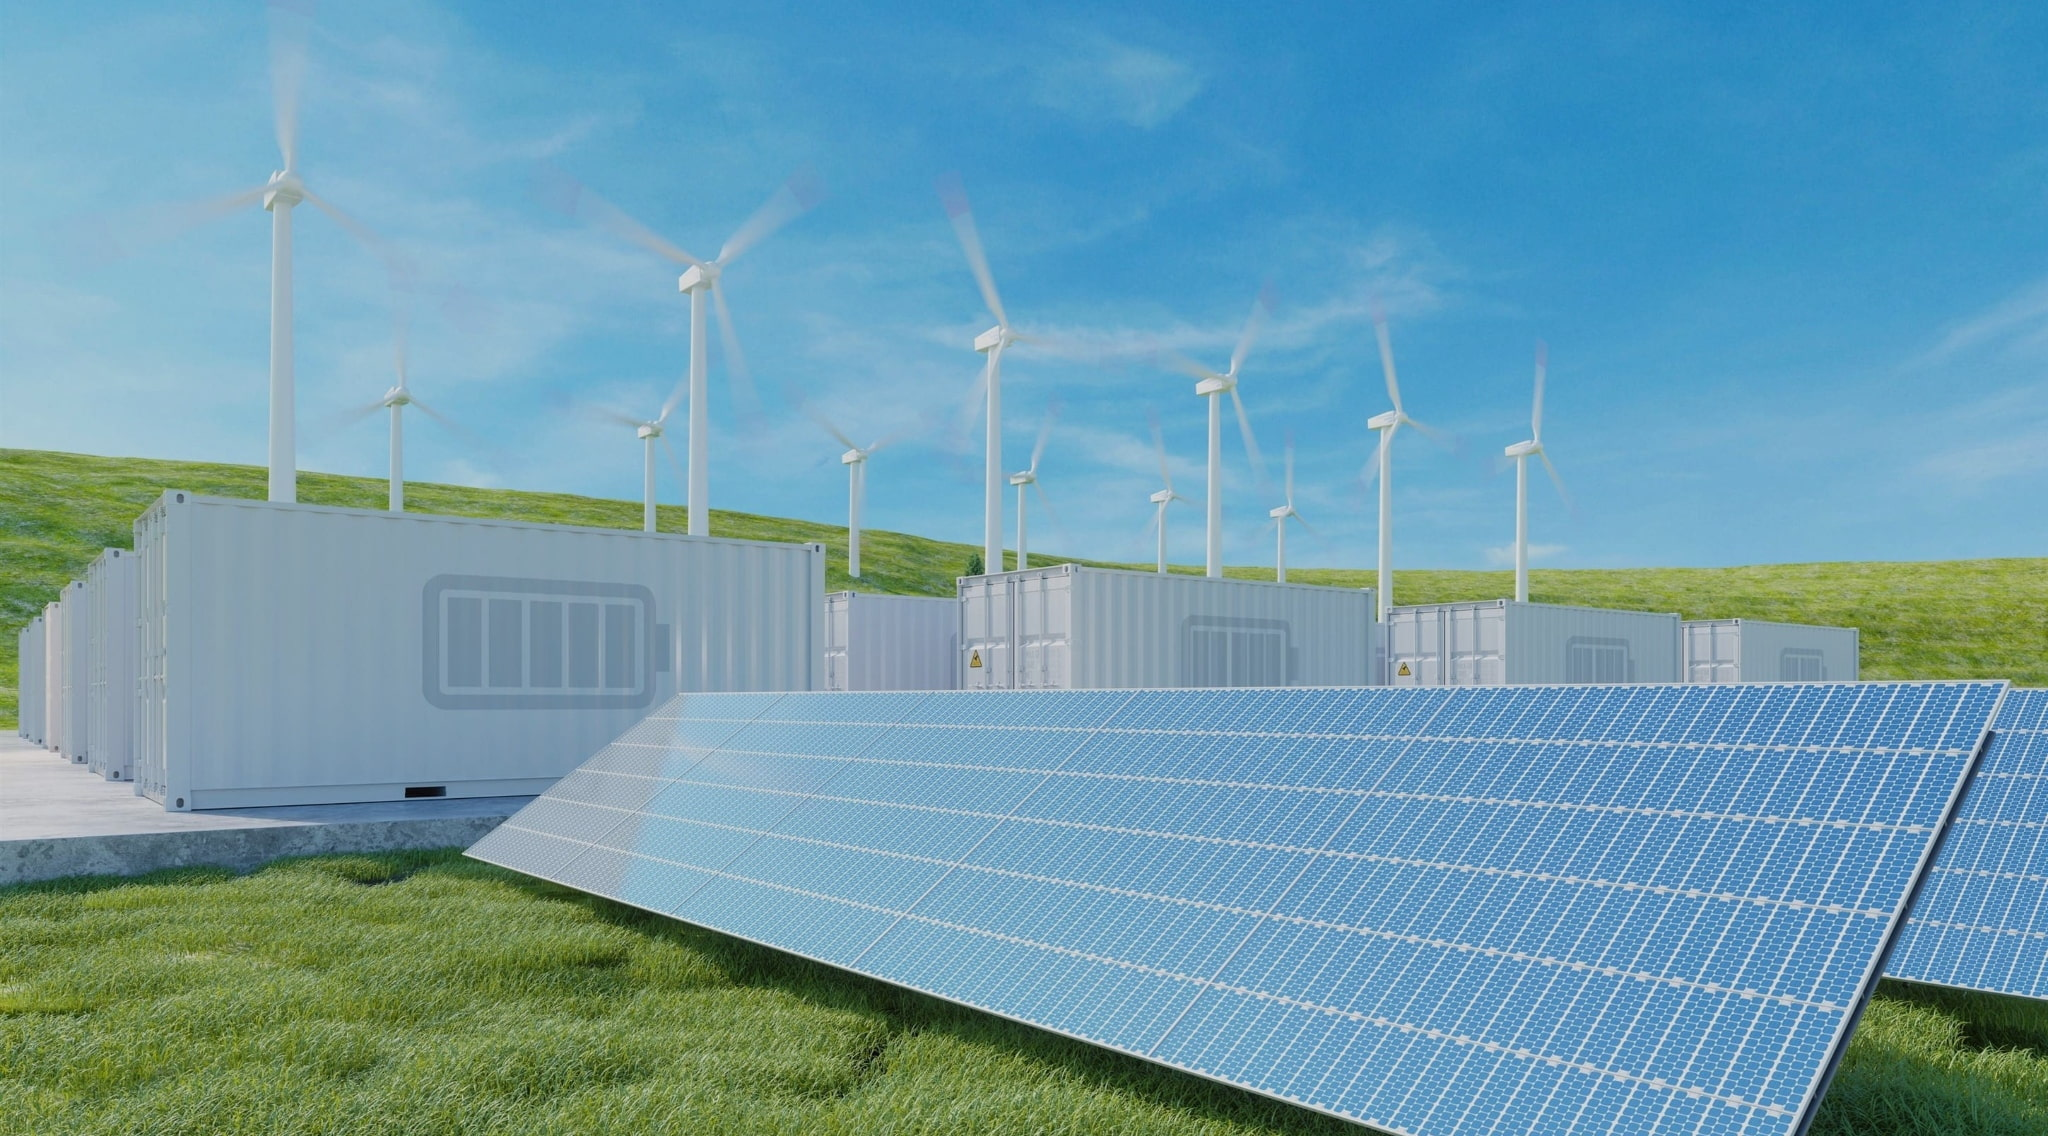 Solar panels, wind turbines and battery storages at the field